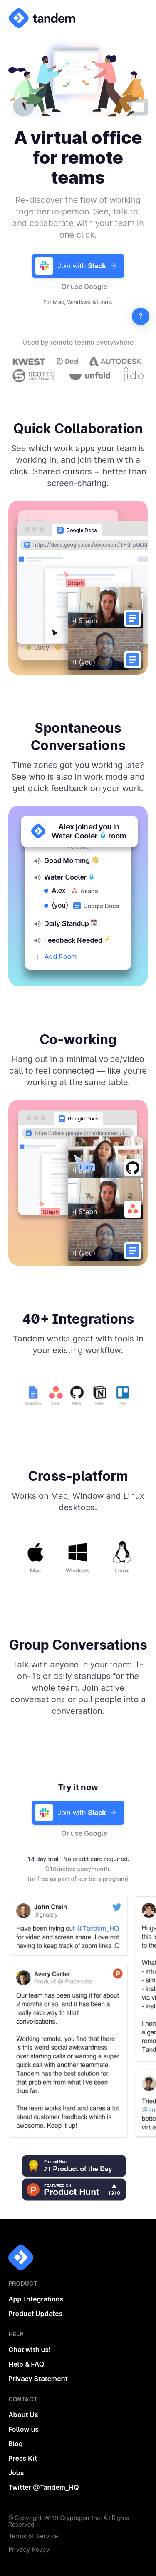 Example of Design for Computers & Electronics, Software, Business & Productivity Software, Mobile Landing Page by tandem.chat | Mobile Landing Page Design